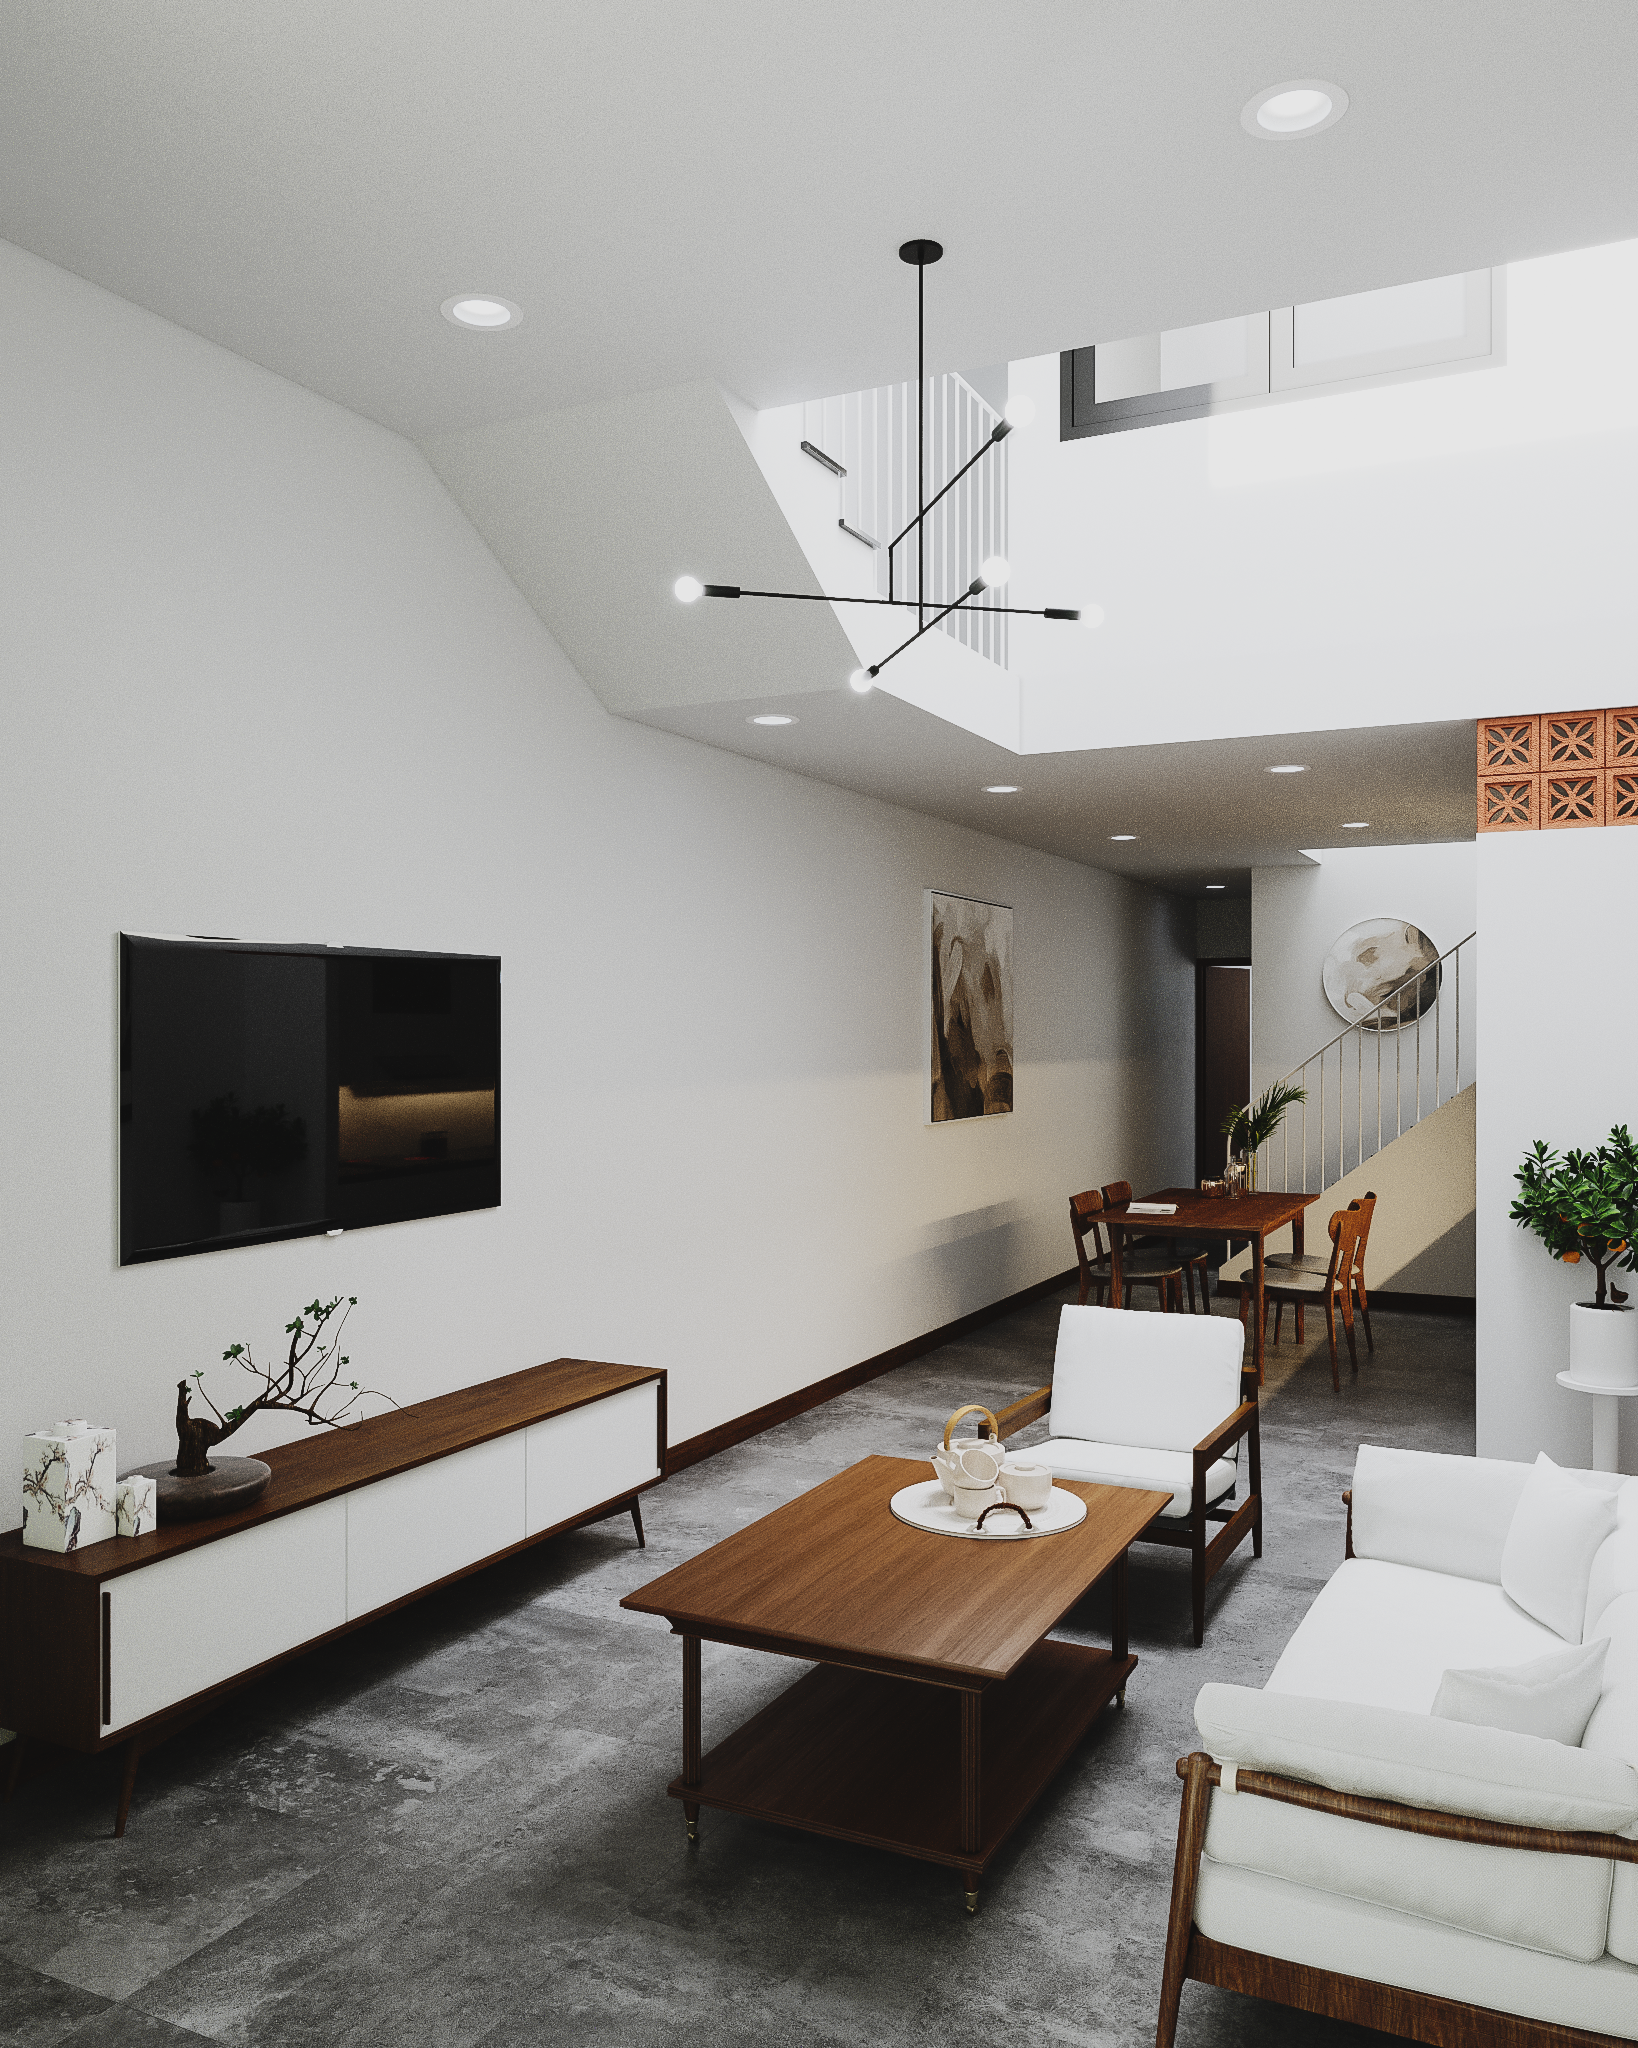 Free Room Design Tool: Whi-ti House Visualization And Design By Duy Huynh. Tools